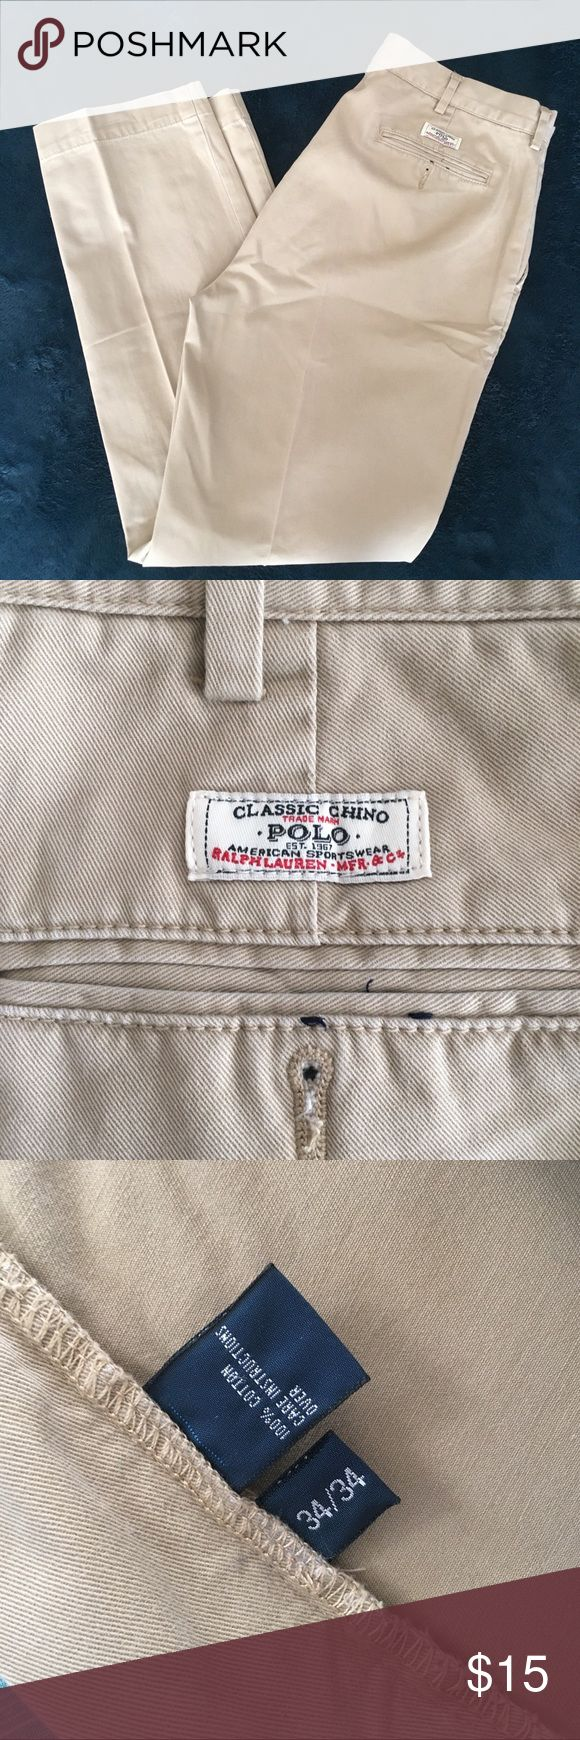 Polo Ralph Lauren Khaki Chino 34x34 Excellent Condition. Never washed, always dry cleaned. They absolutely can be washed regularly, husband just prefers dry clean. Smoke Free. Polo by Ralph Lauren Pants Chinos & Khakis